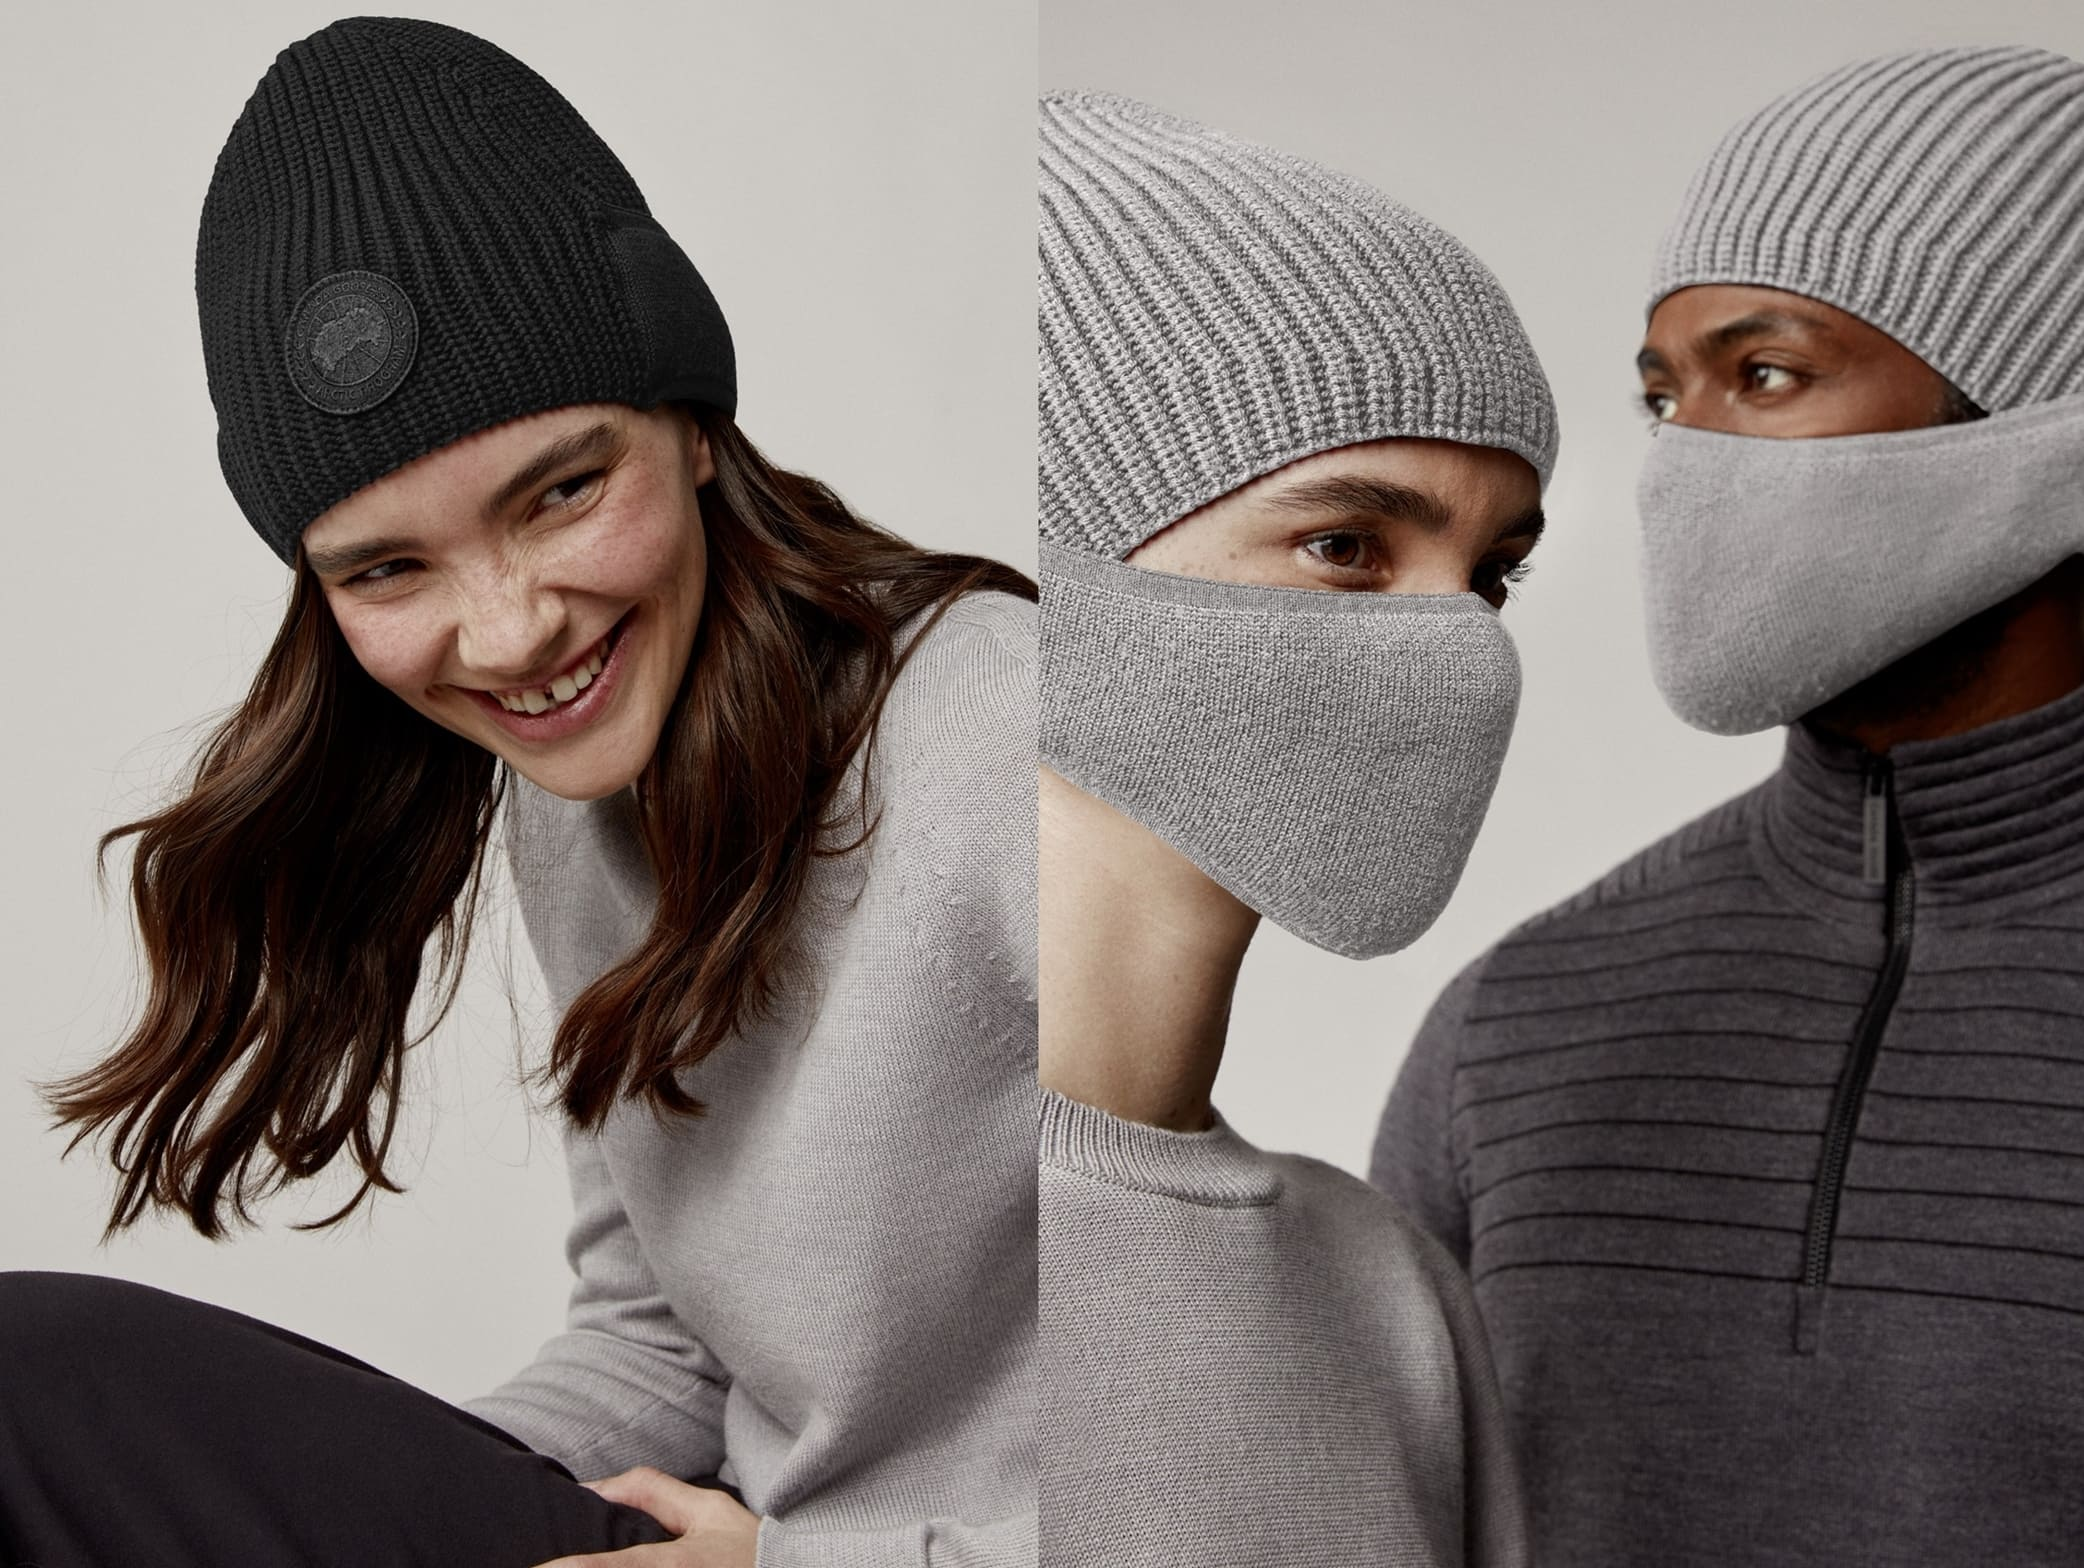 This hat will take you through the full range of weather this season with Italian-spun Merino wool for breathable warmth